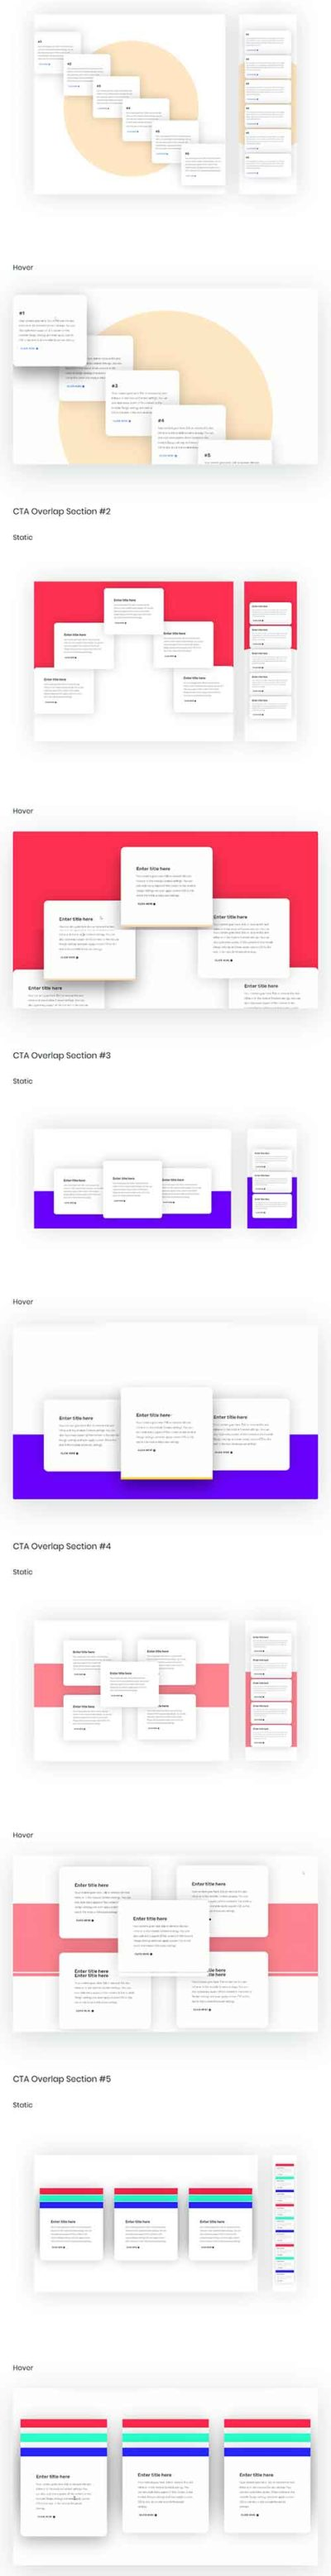 Divi CTA layout sections